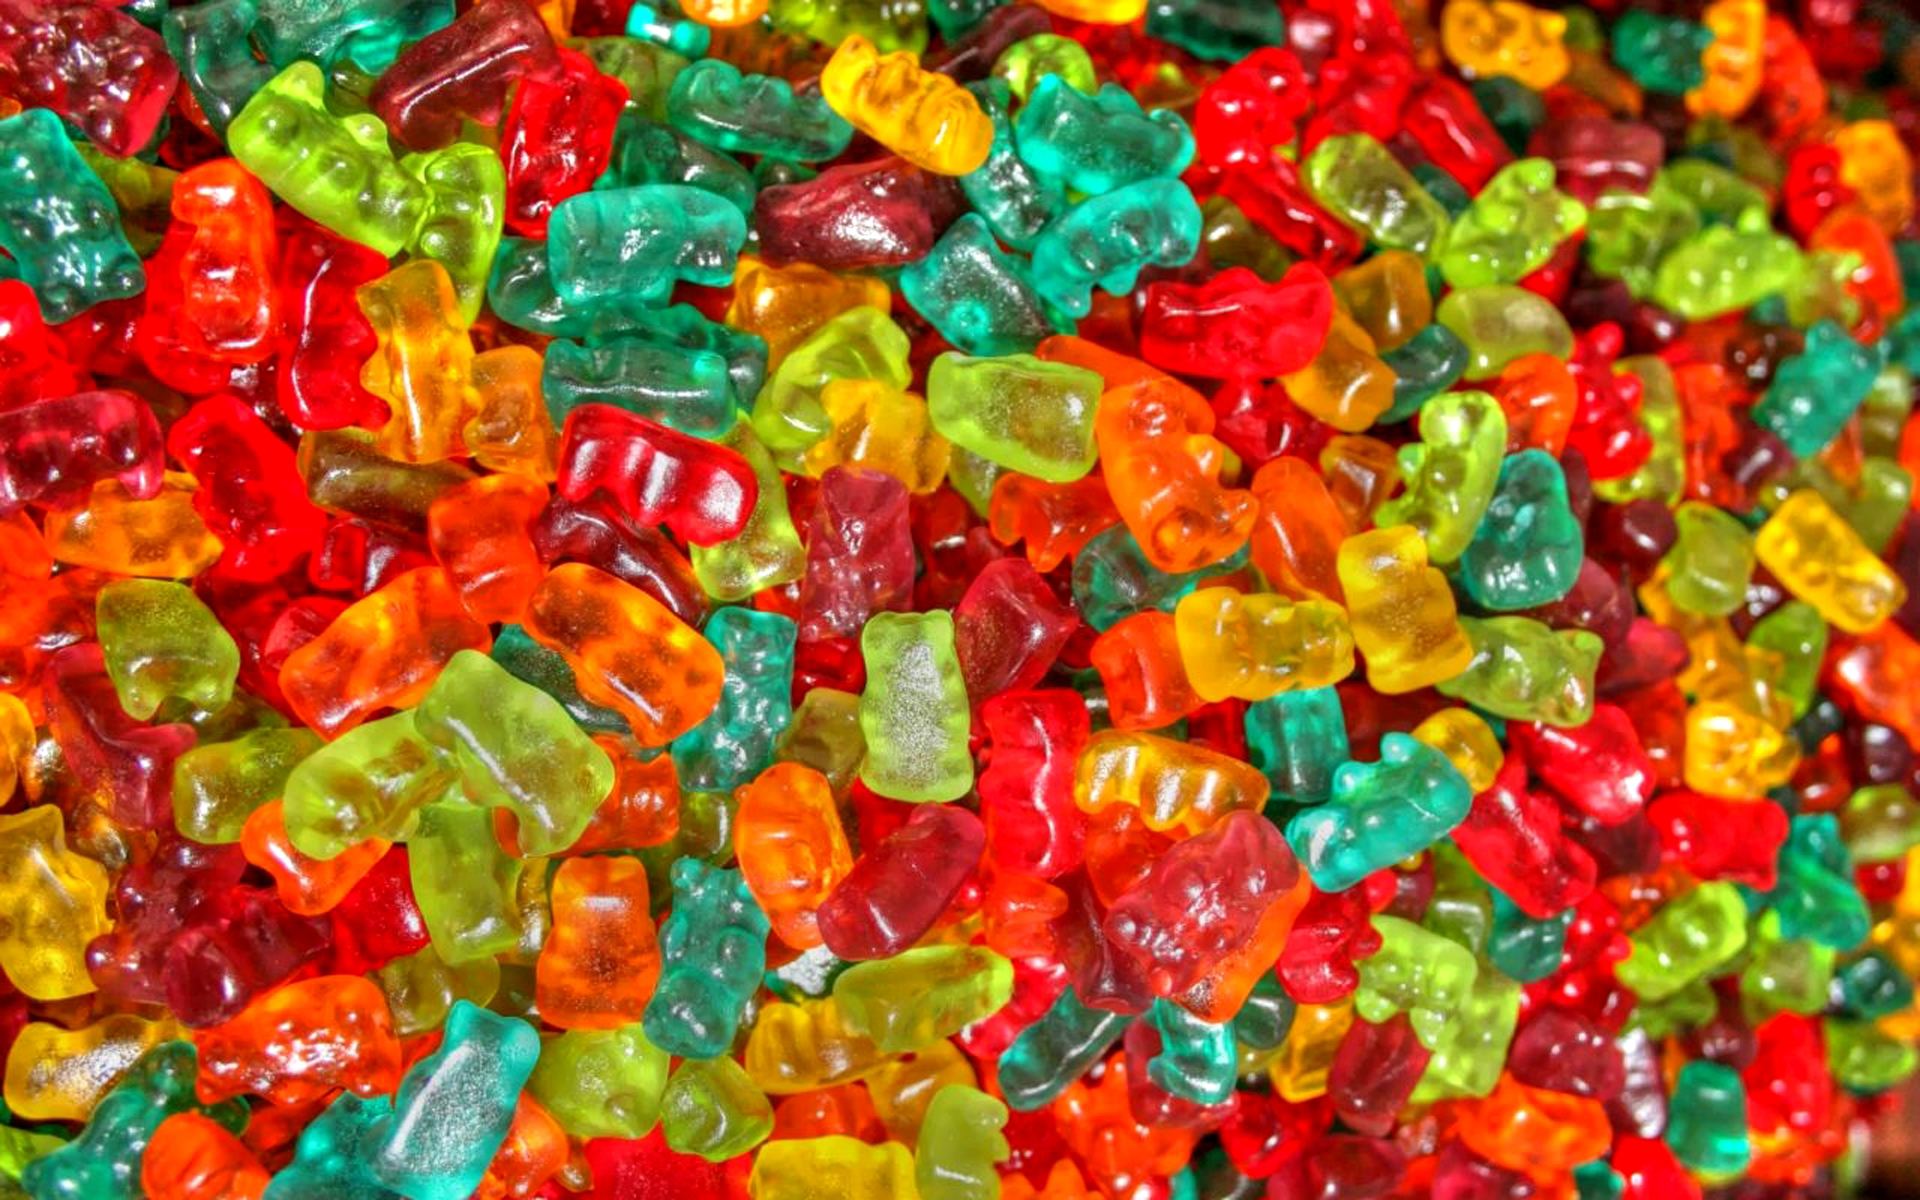 Candy Computer Wallpapers Desktop Backgrounds 1280x853 ID1493 1920x1200